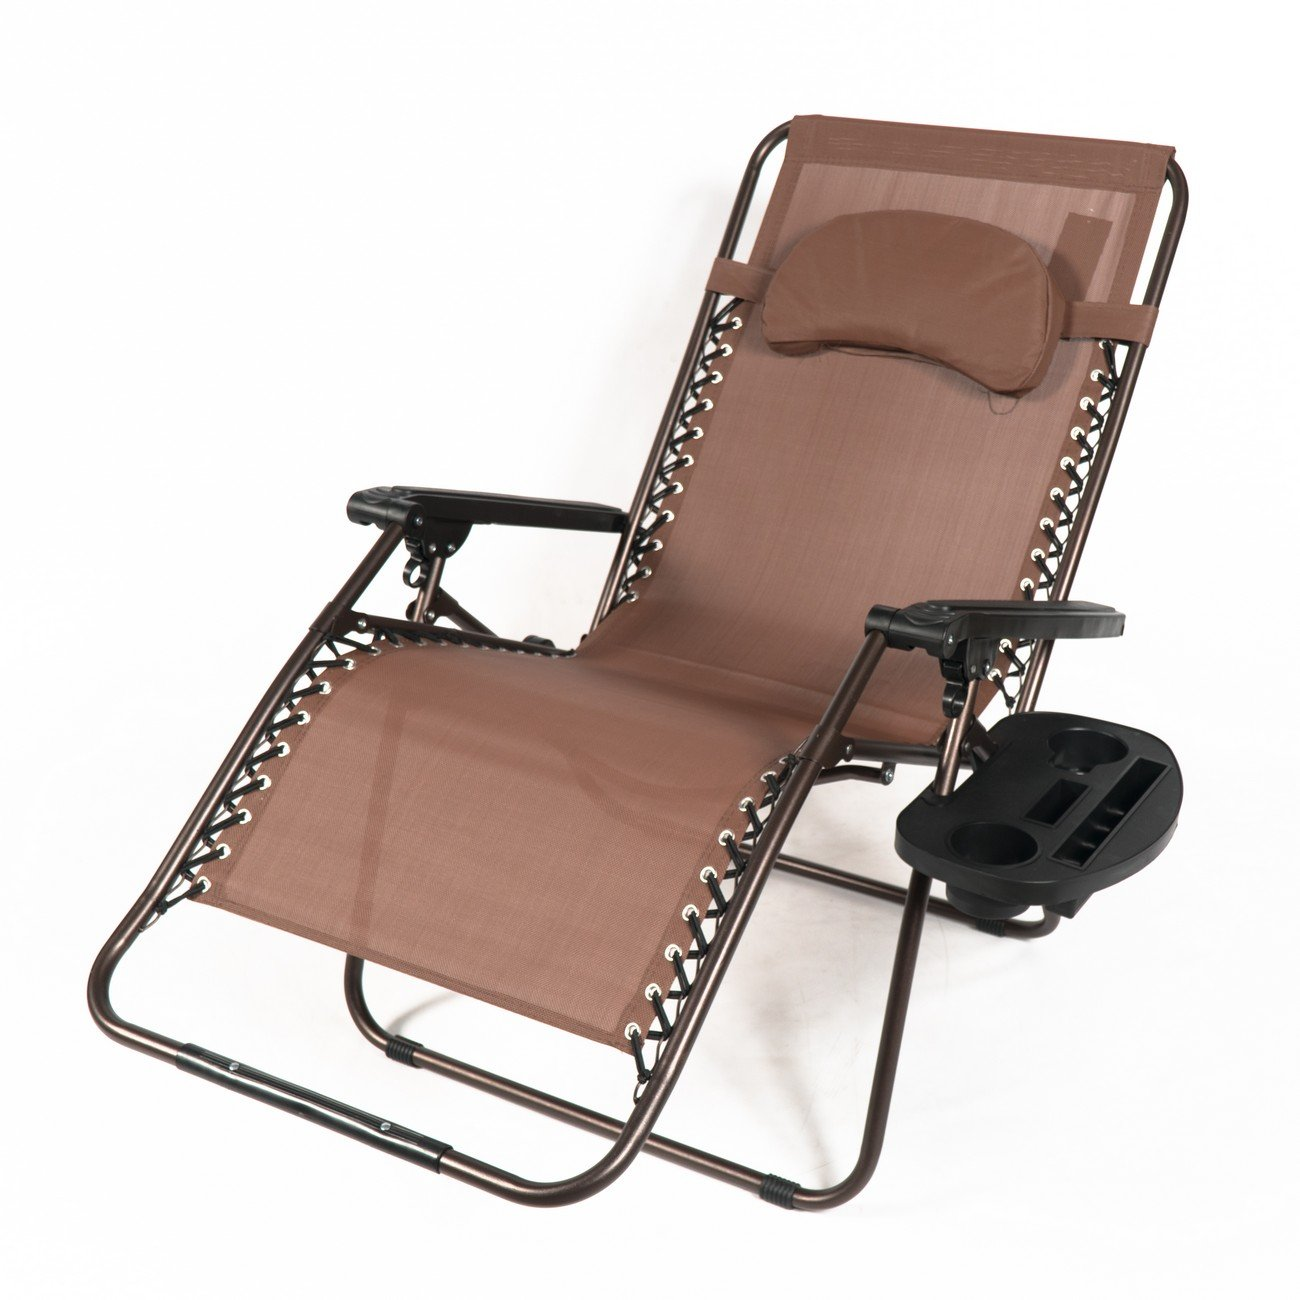 Belleze XL Oversized Zero Gravity Chair Recliner Adjustable Lounge Padded with Pillow Drink Cup Holder, Brown